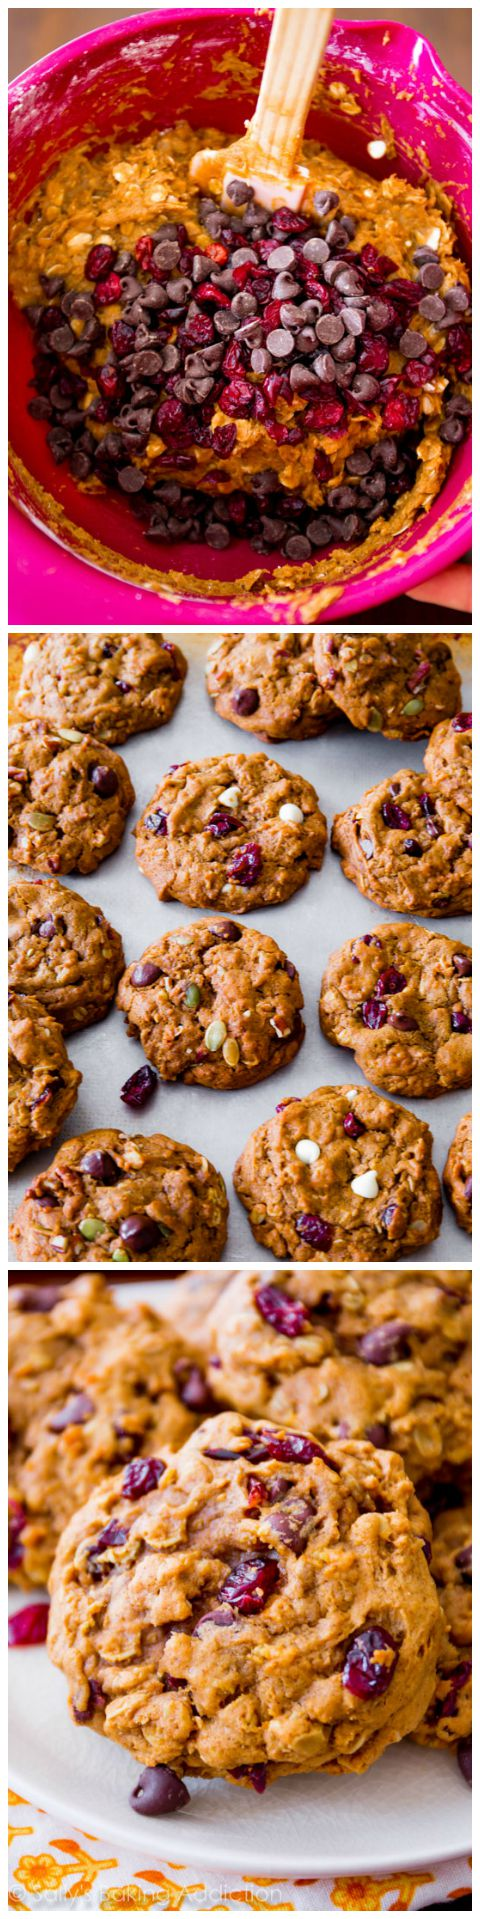 These are my favorite pumpkin cookies! Filled with oats, chocolate, and cranberries!